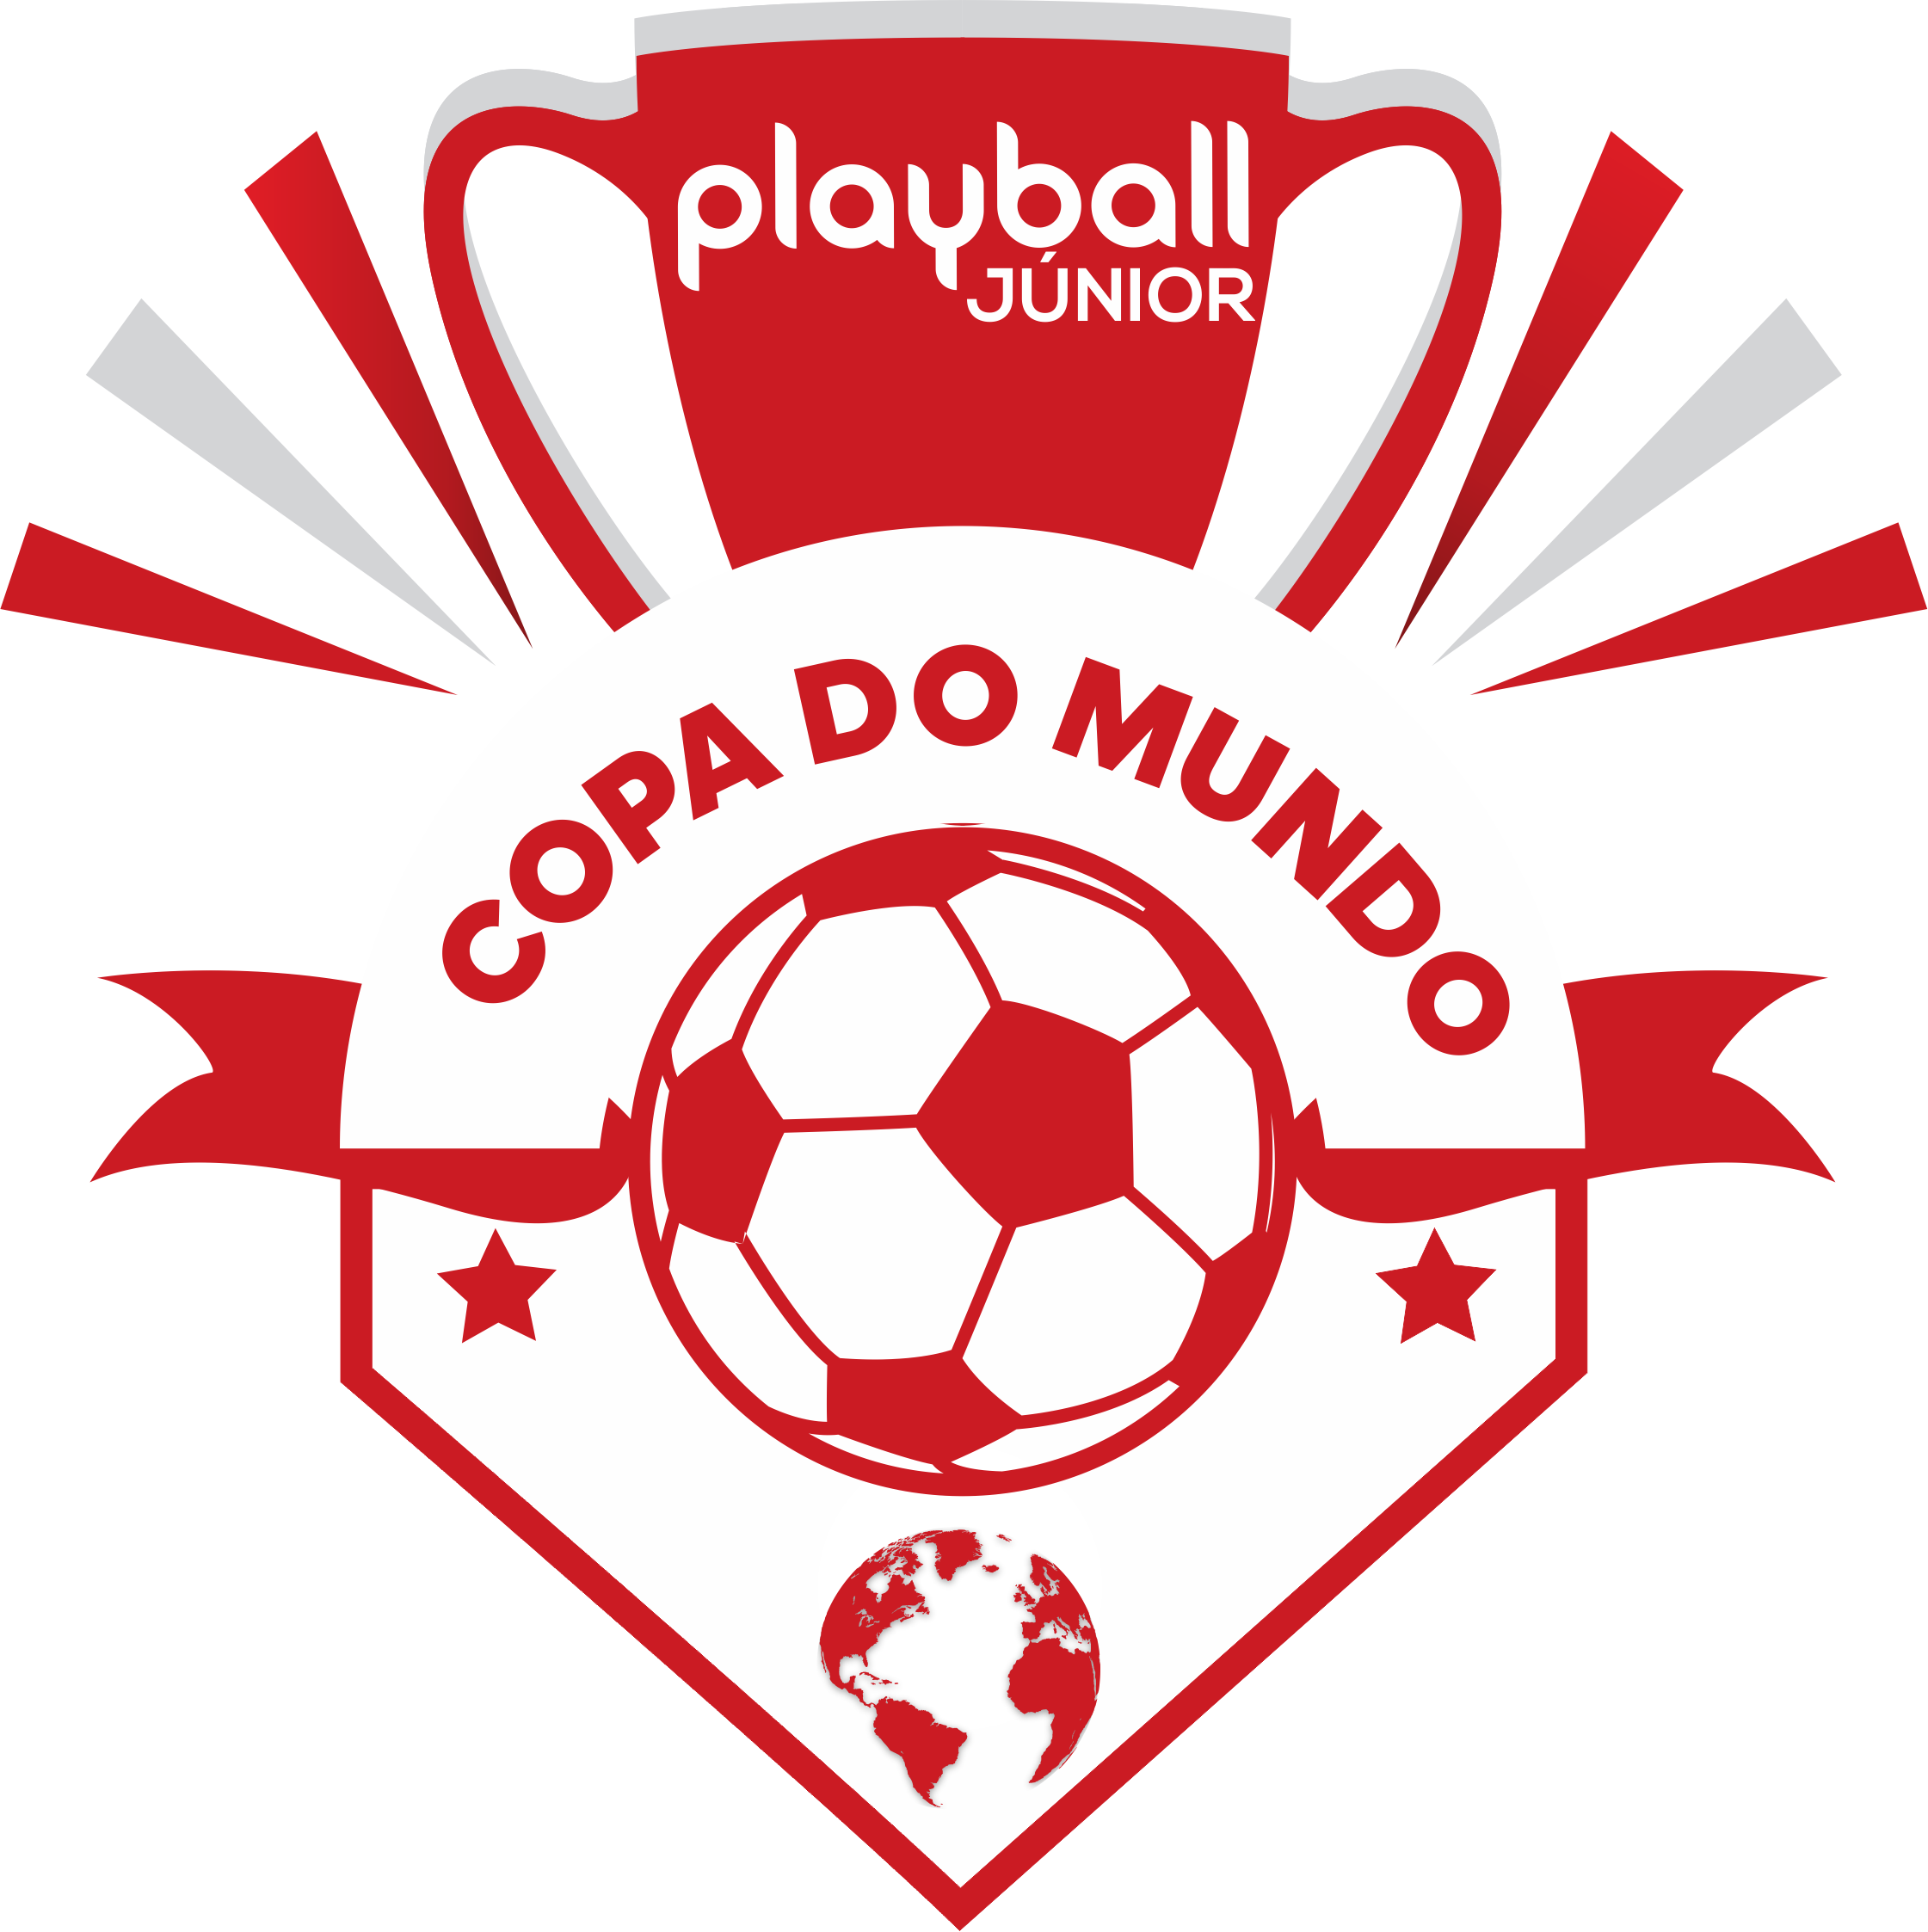 Copa do Mundo Playball Jr sub 7 Pompeia e Ceasa